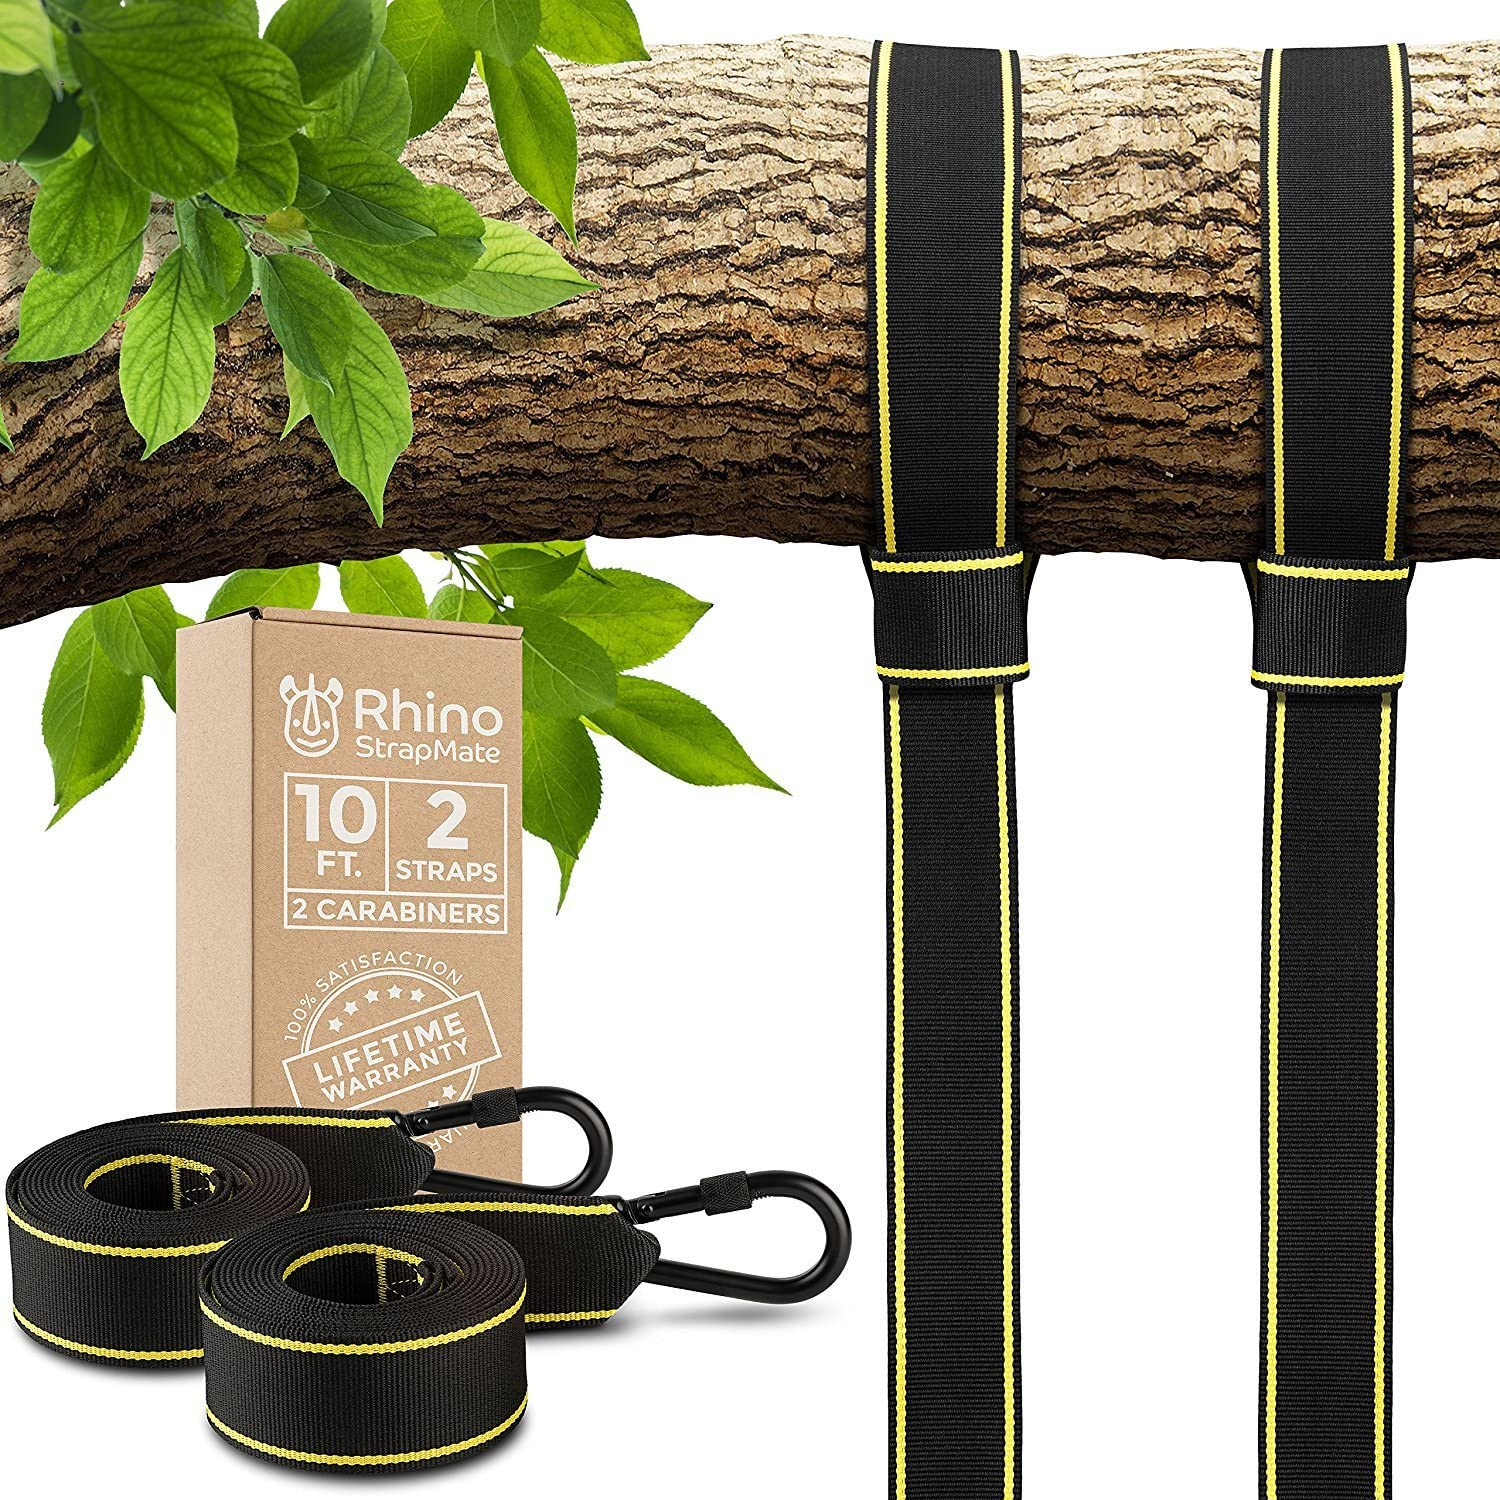 Tree Swing Hanging Straps Kit Hanging Tree Strap Belt Holds 100 lbs with Safe Secure Lock Carabiners Popmall Tree Swing Straps Swing Straps Hammock Perfect for Tire and Tree Swing